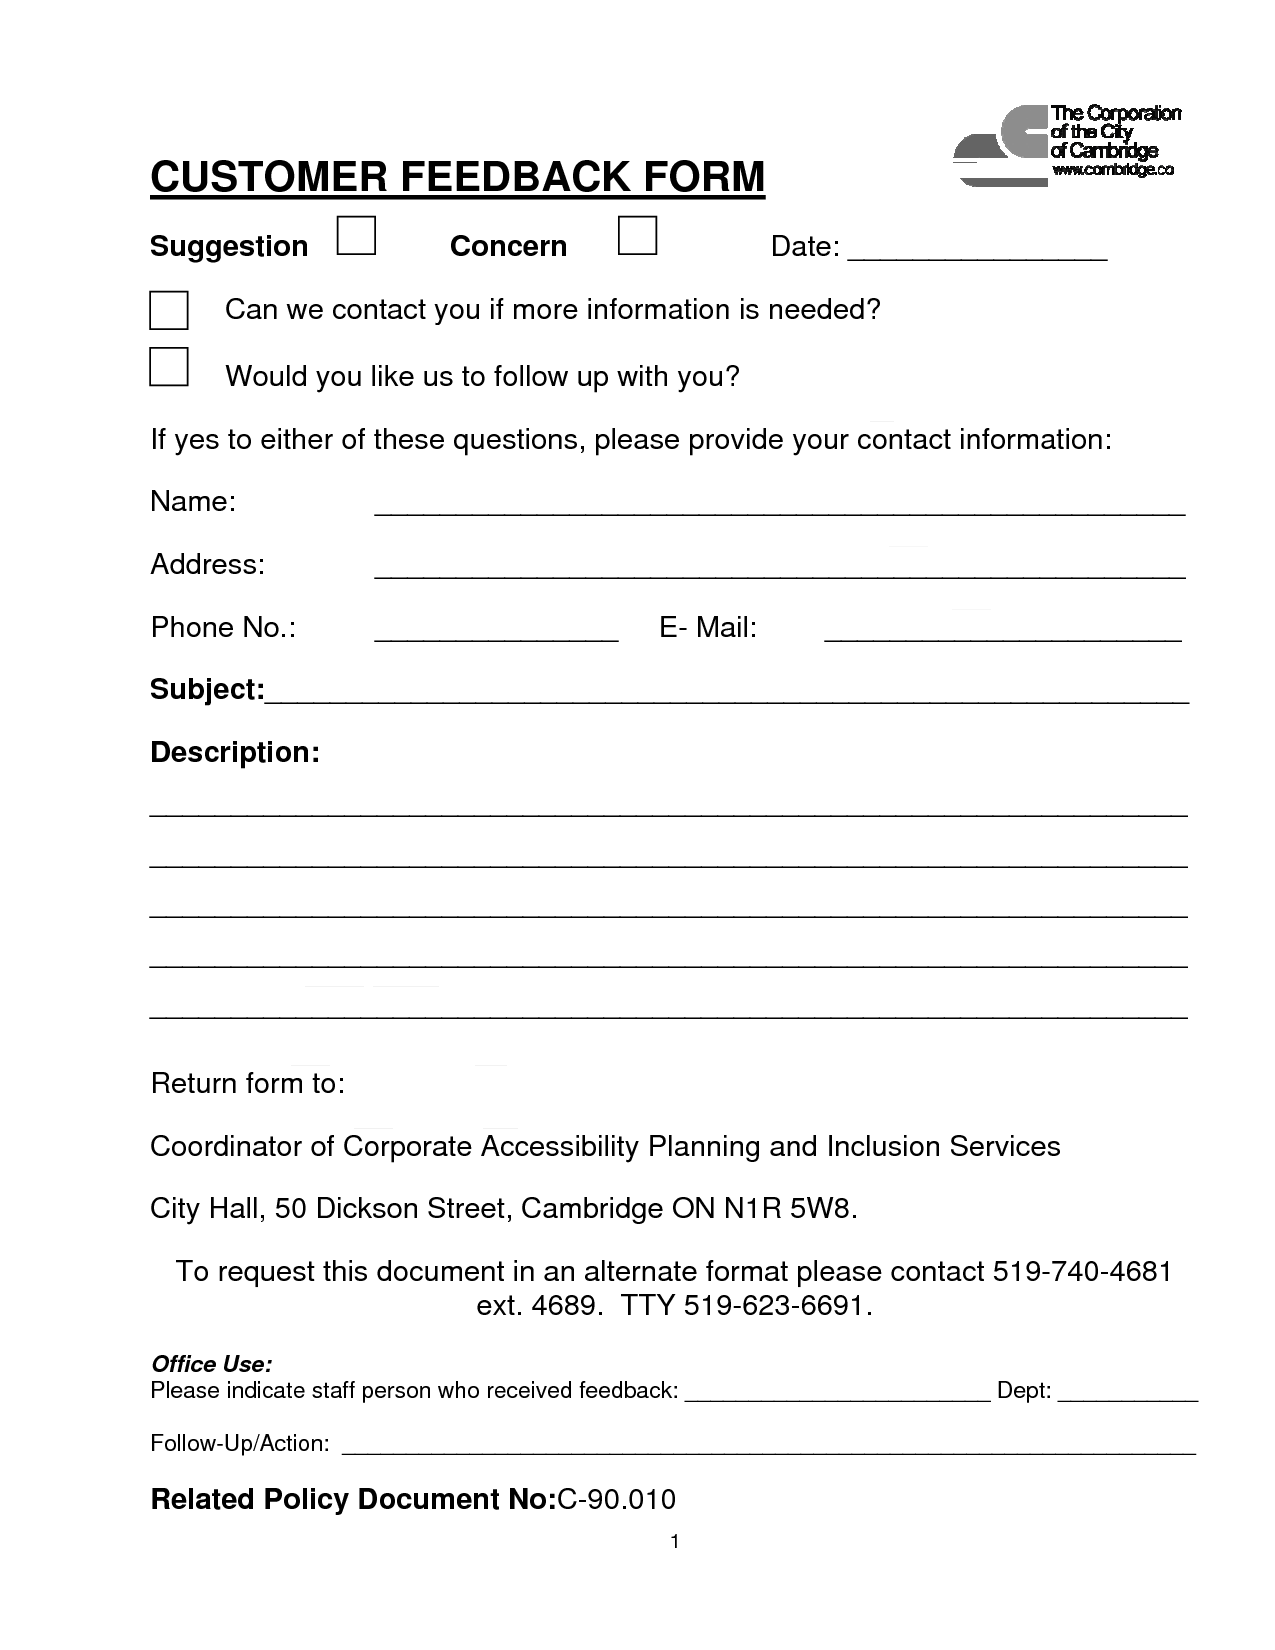 Customer Contact Form  Customer Feedback Form Pdf Download